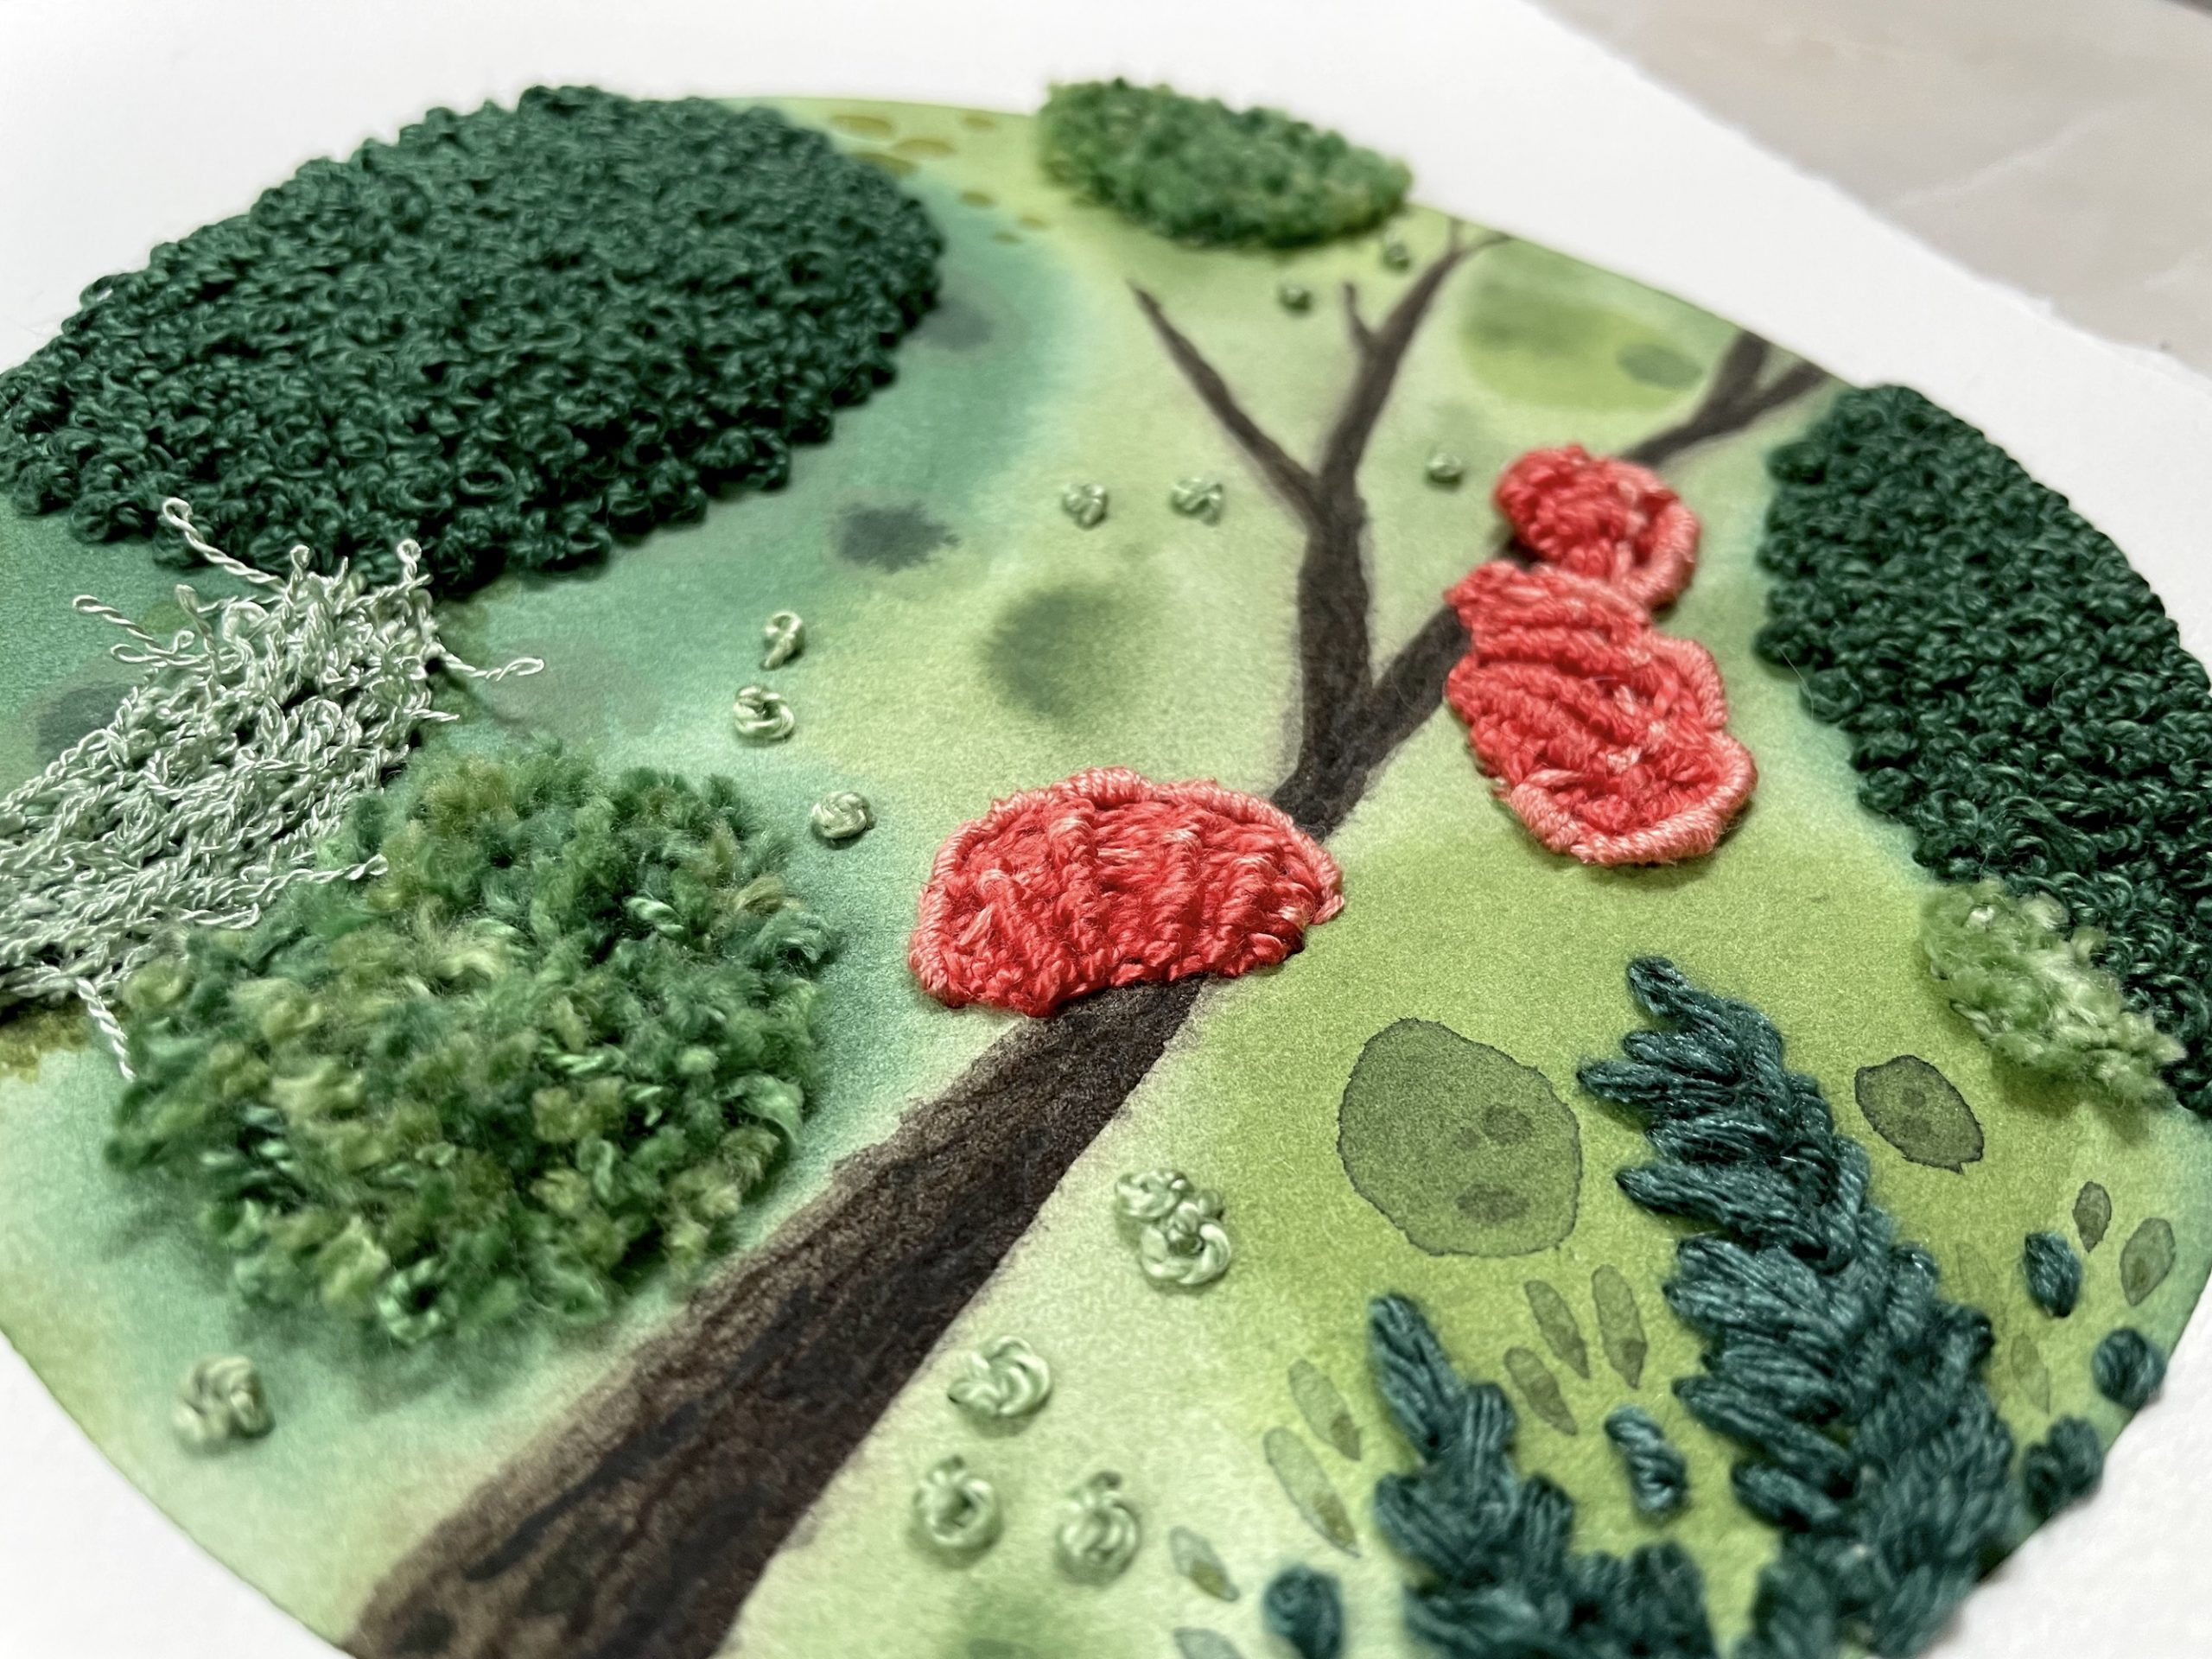 Moss & Lichen watercolor and embroidery art